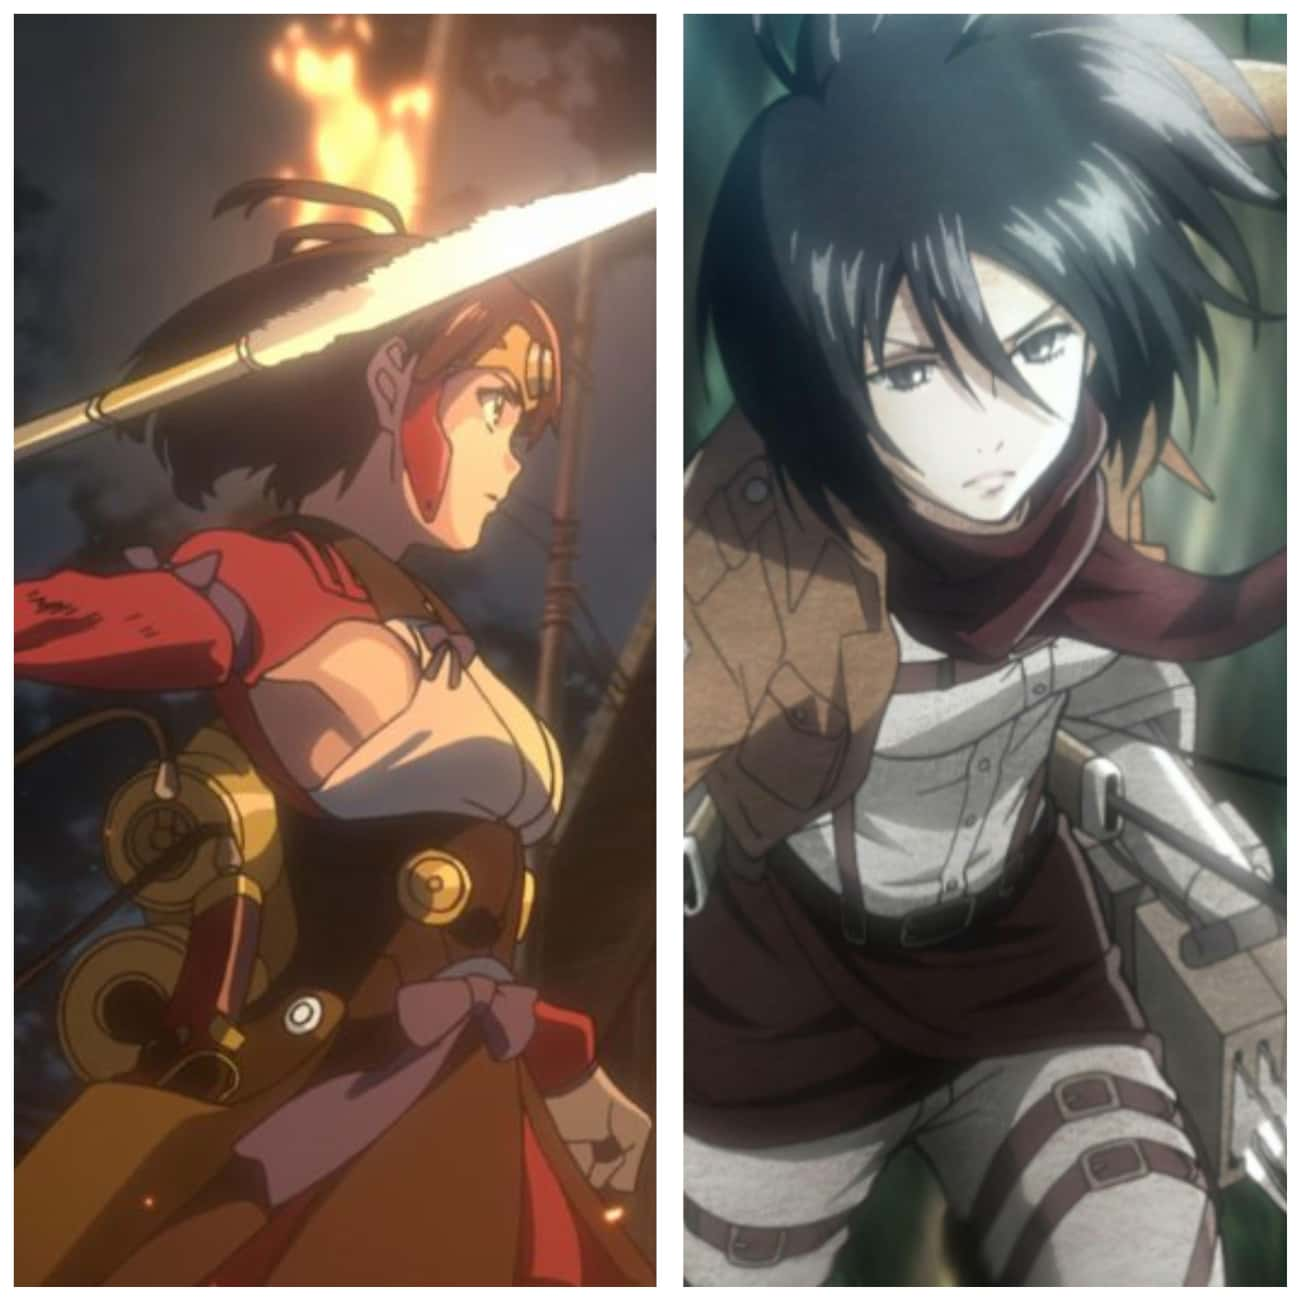 Kabaneri Of The Iron Fortress' is listed (or ranked) 3 on the list 12 Popular Anime Series That Definitely Borrowed From Other Anime